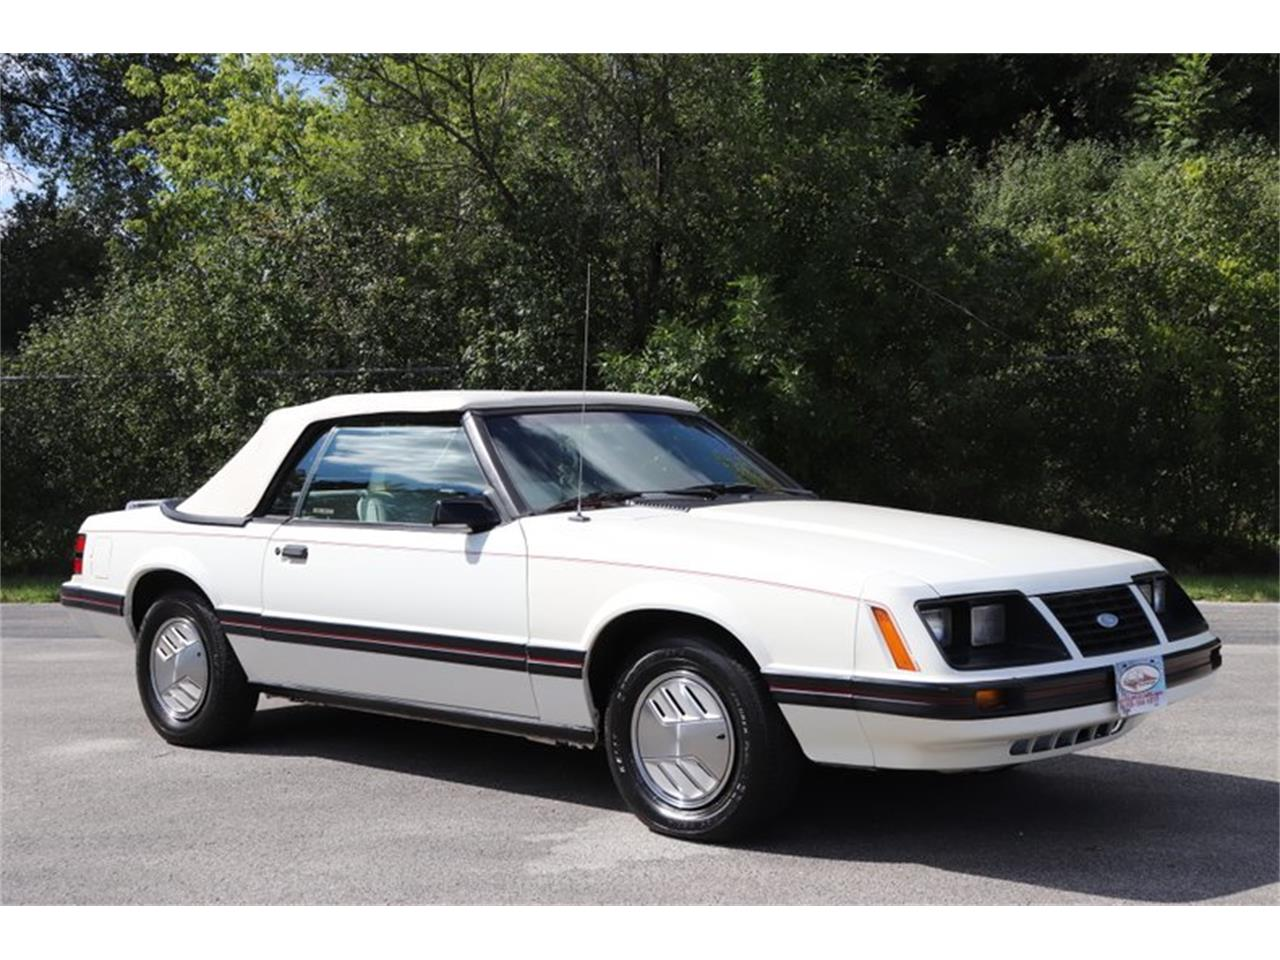 Large Picture of 1983 Ford Mustang located in Illinois Offered by Midwest Car Exchange - OHLI